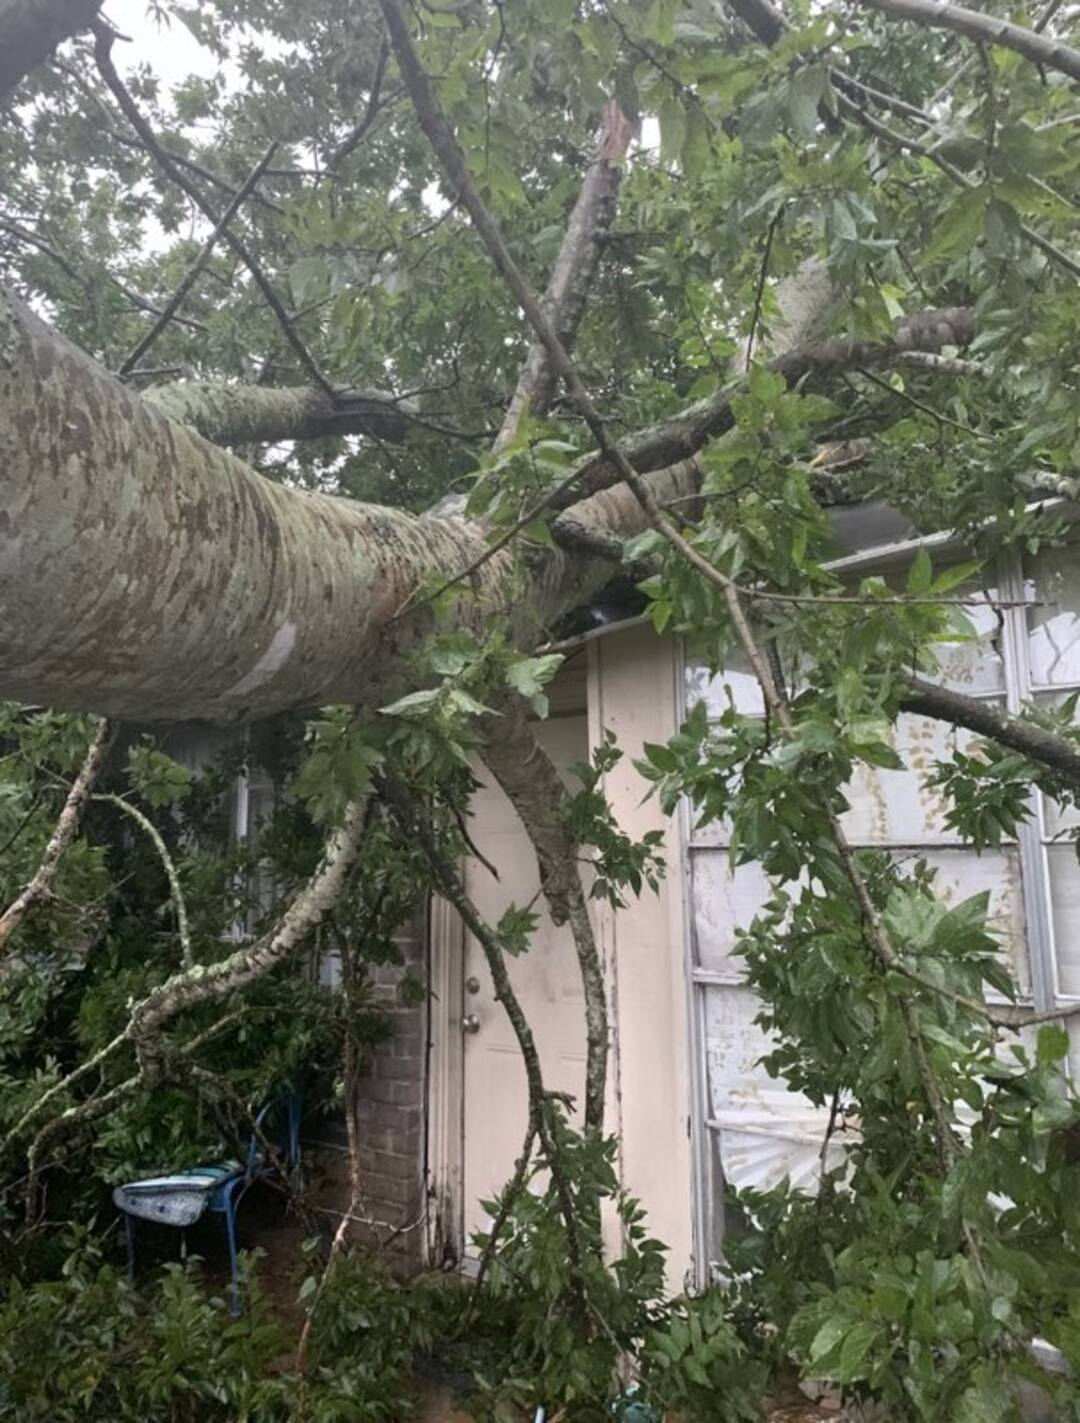 Tree damage on Hillcrest Dr in Missouri City, texas